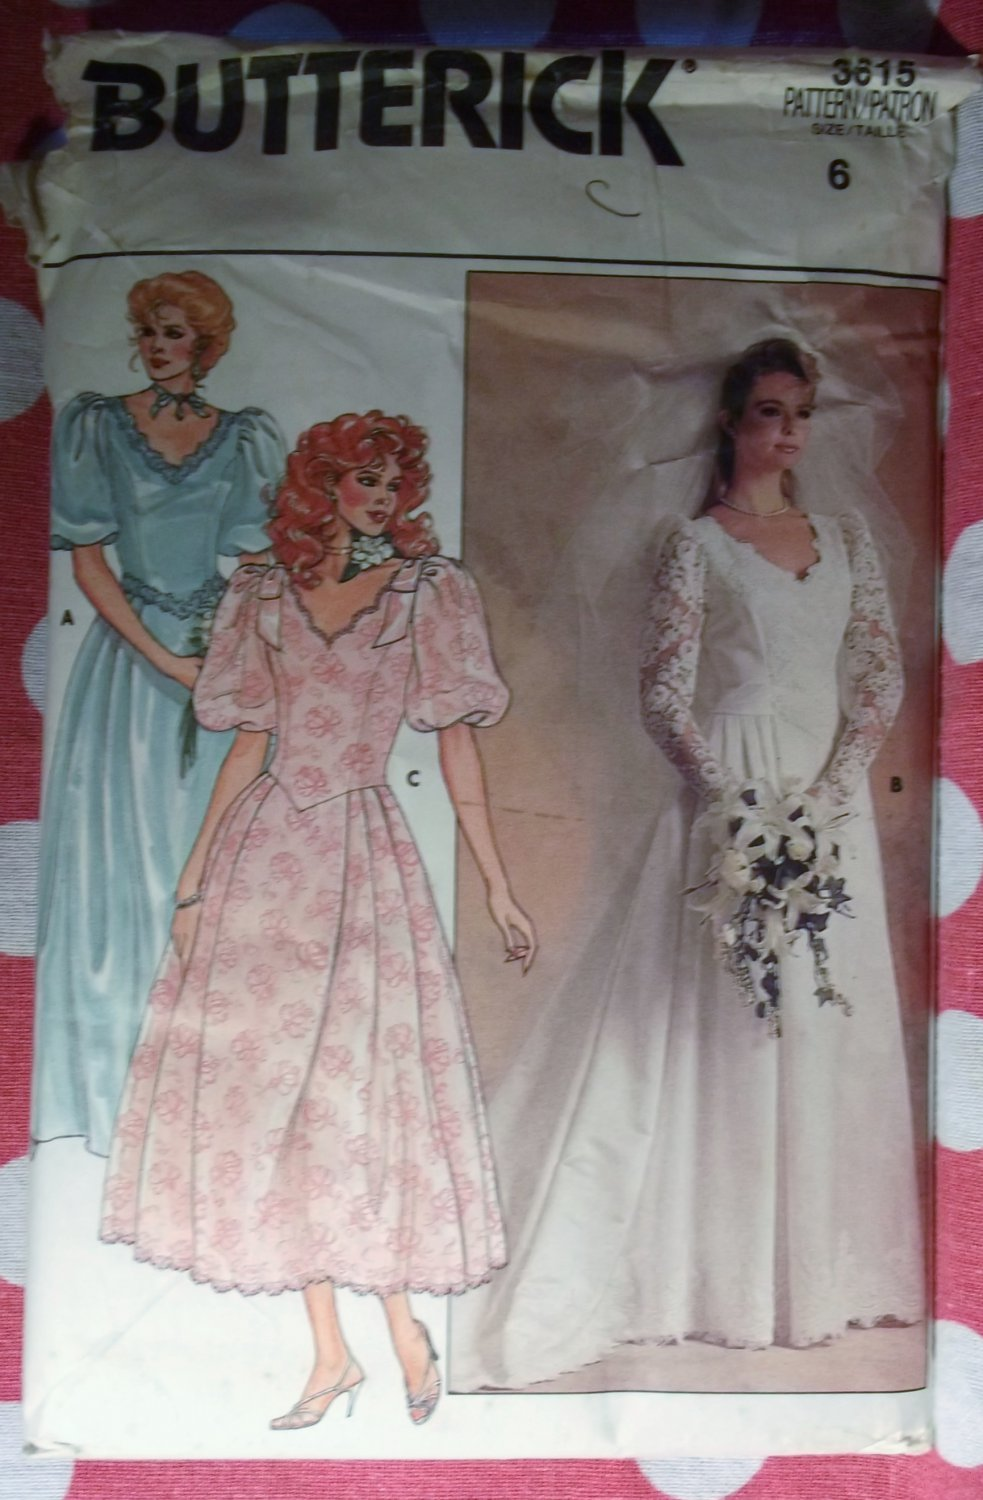 Vintage Butterick 3615 Pattern Misses Petite Wedding Bridesmaid Bridal Gown, Sz 6, UNCUT